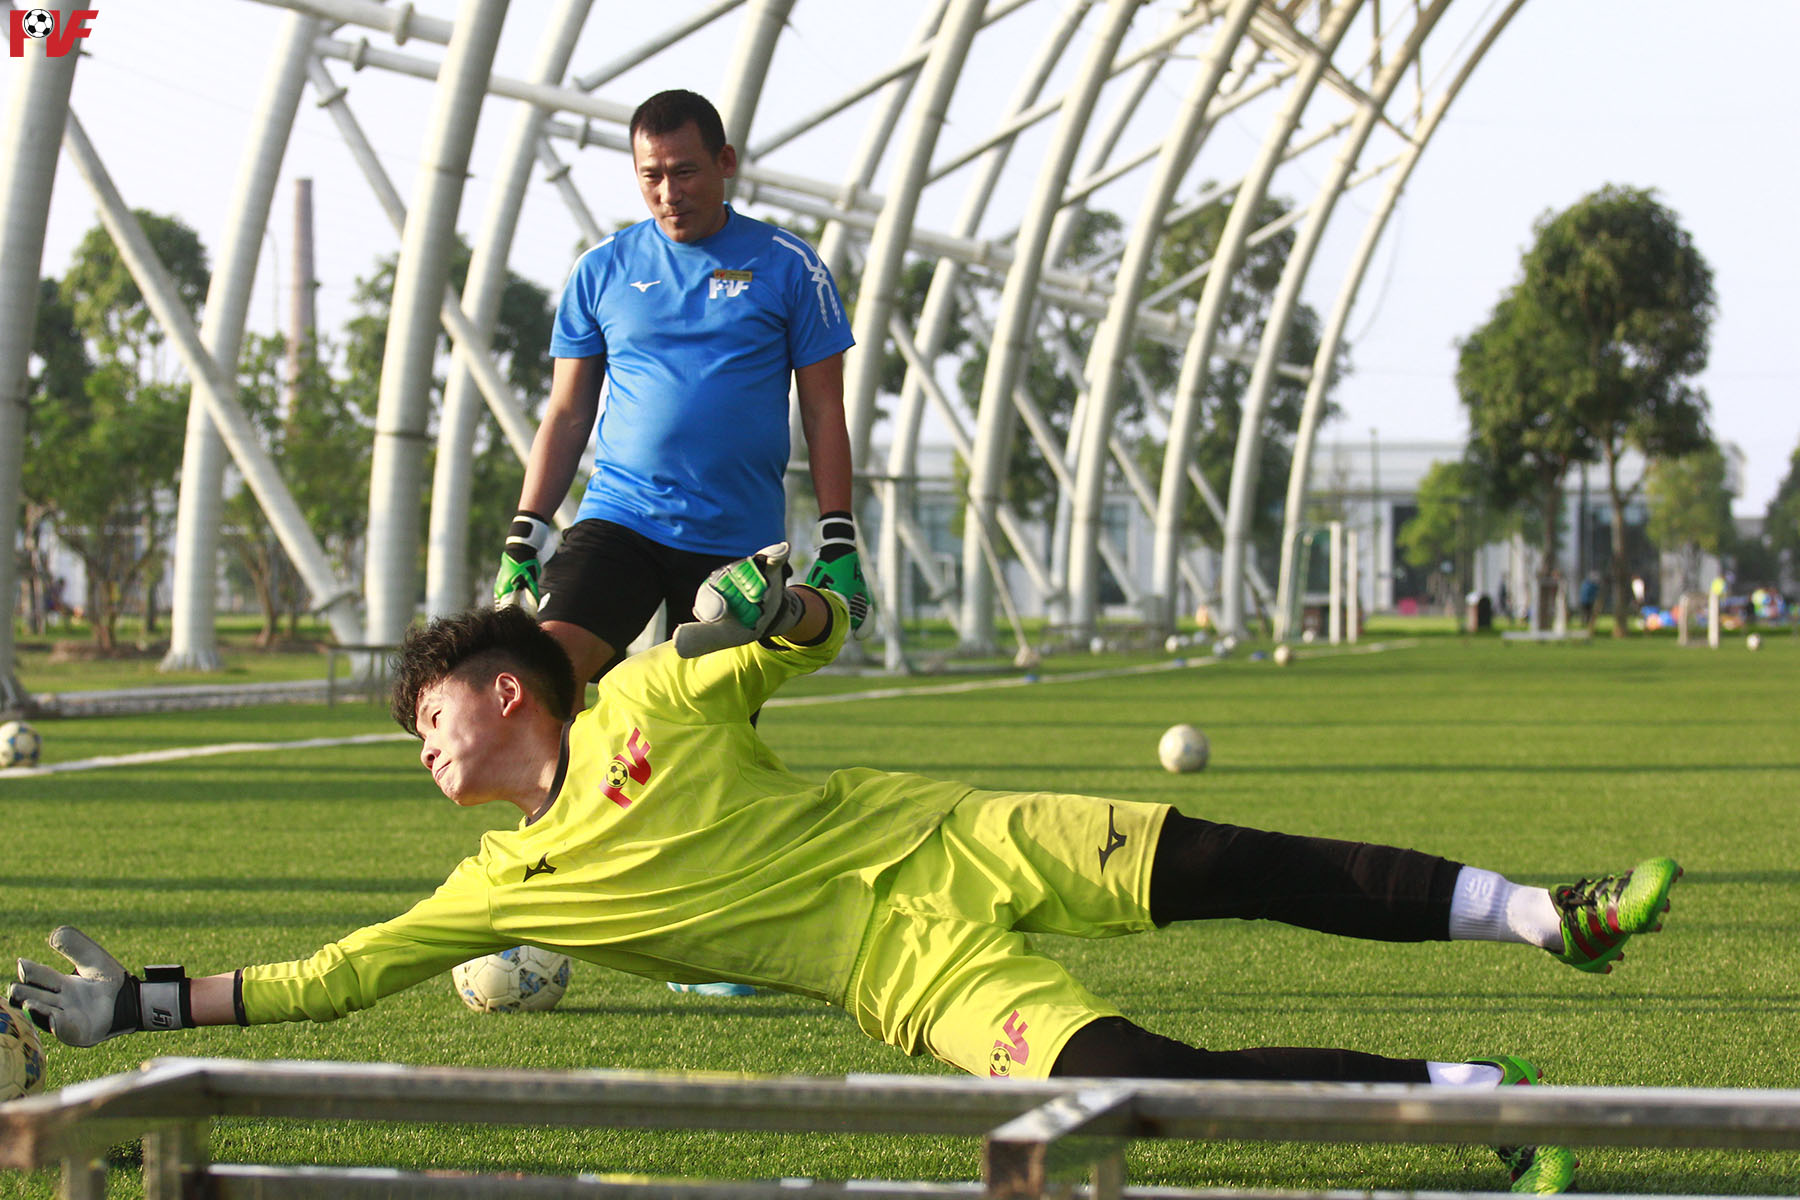 Learning football with PVF: Goalkeeper's reflexes